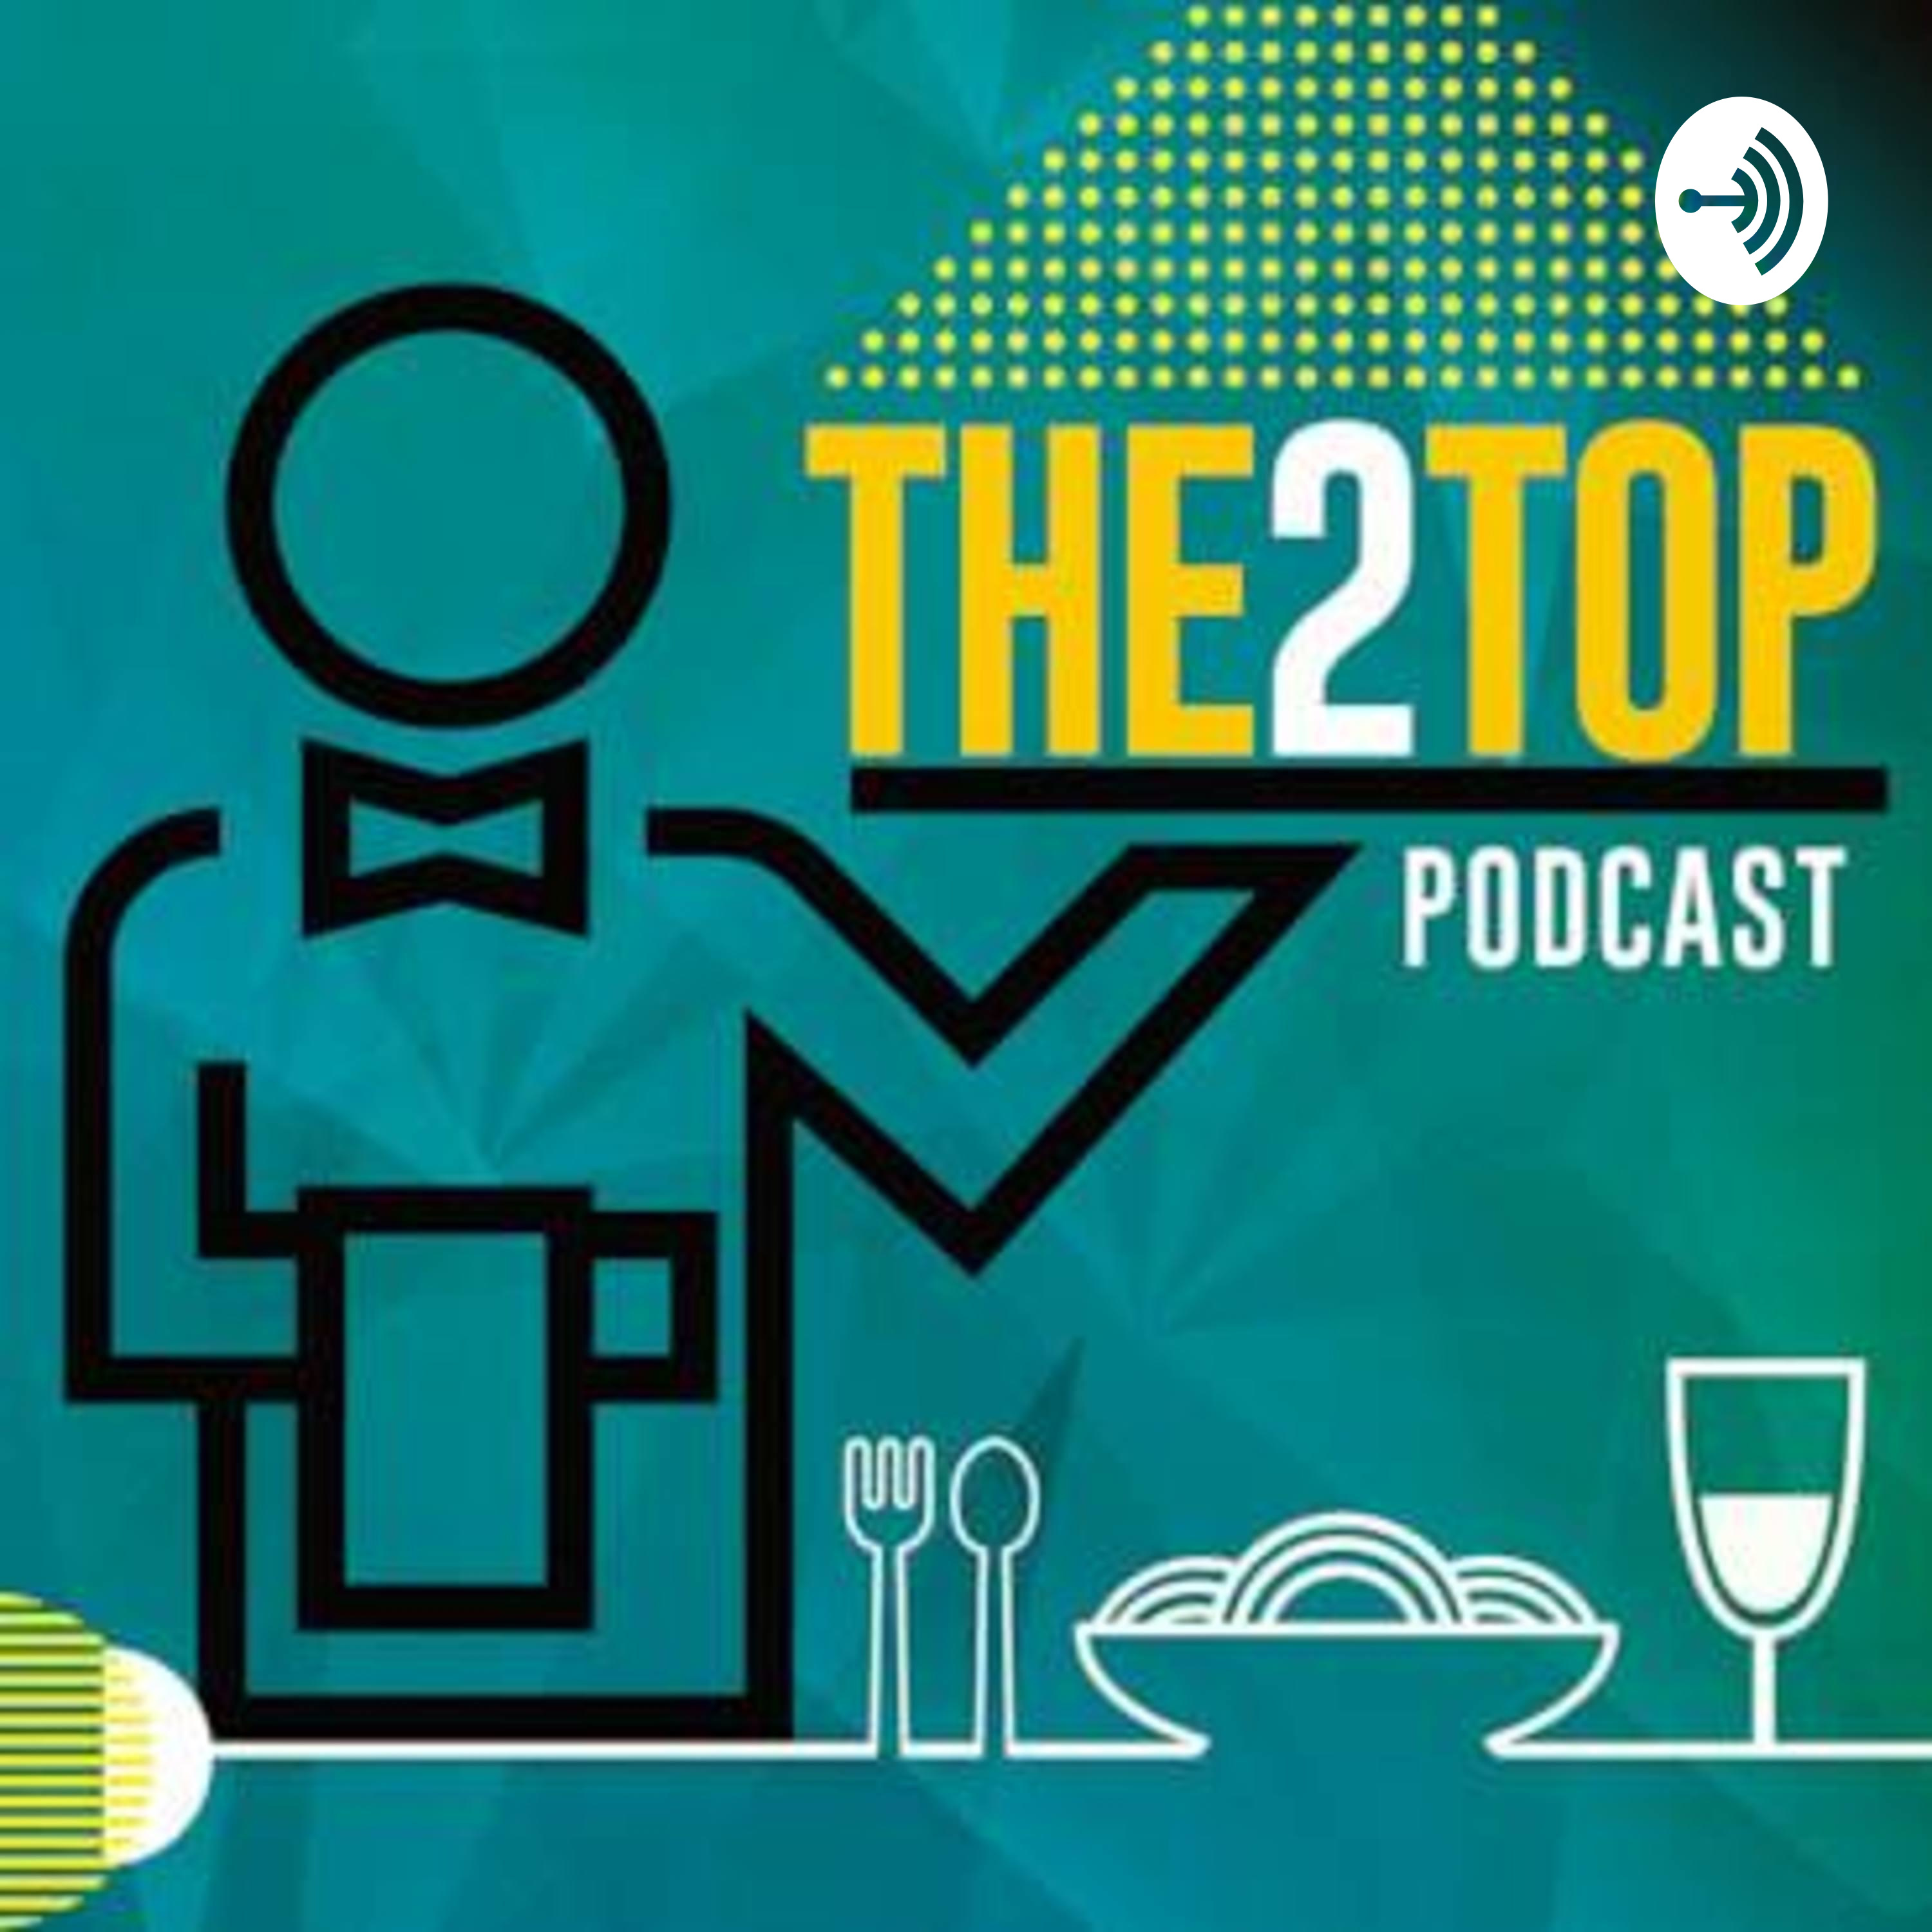 The 2 Top Podcast | Listen Free on Castbox